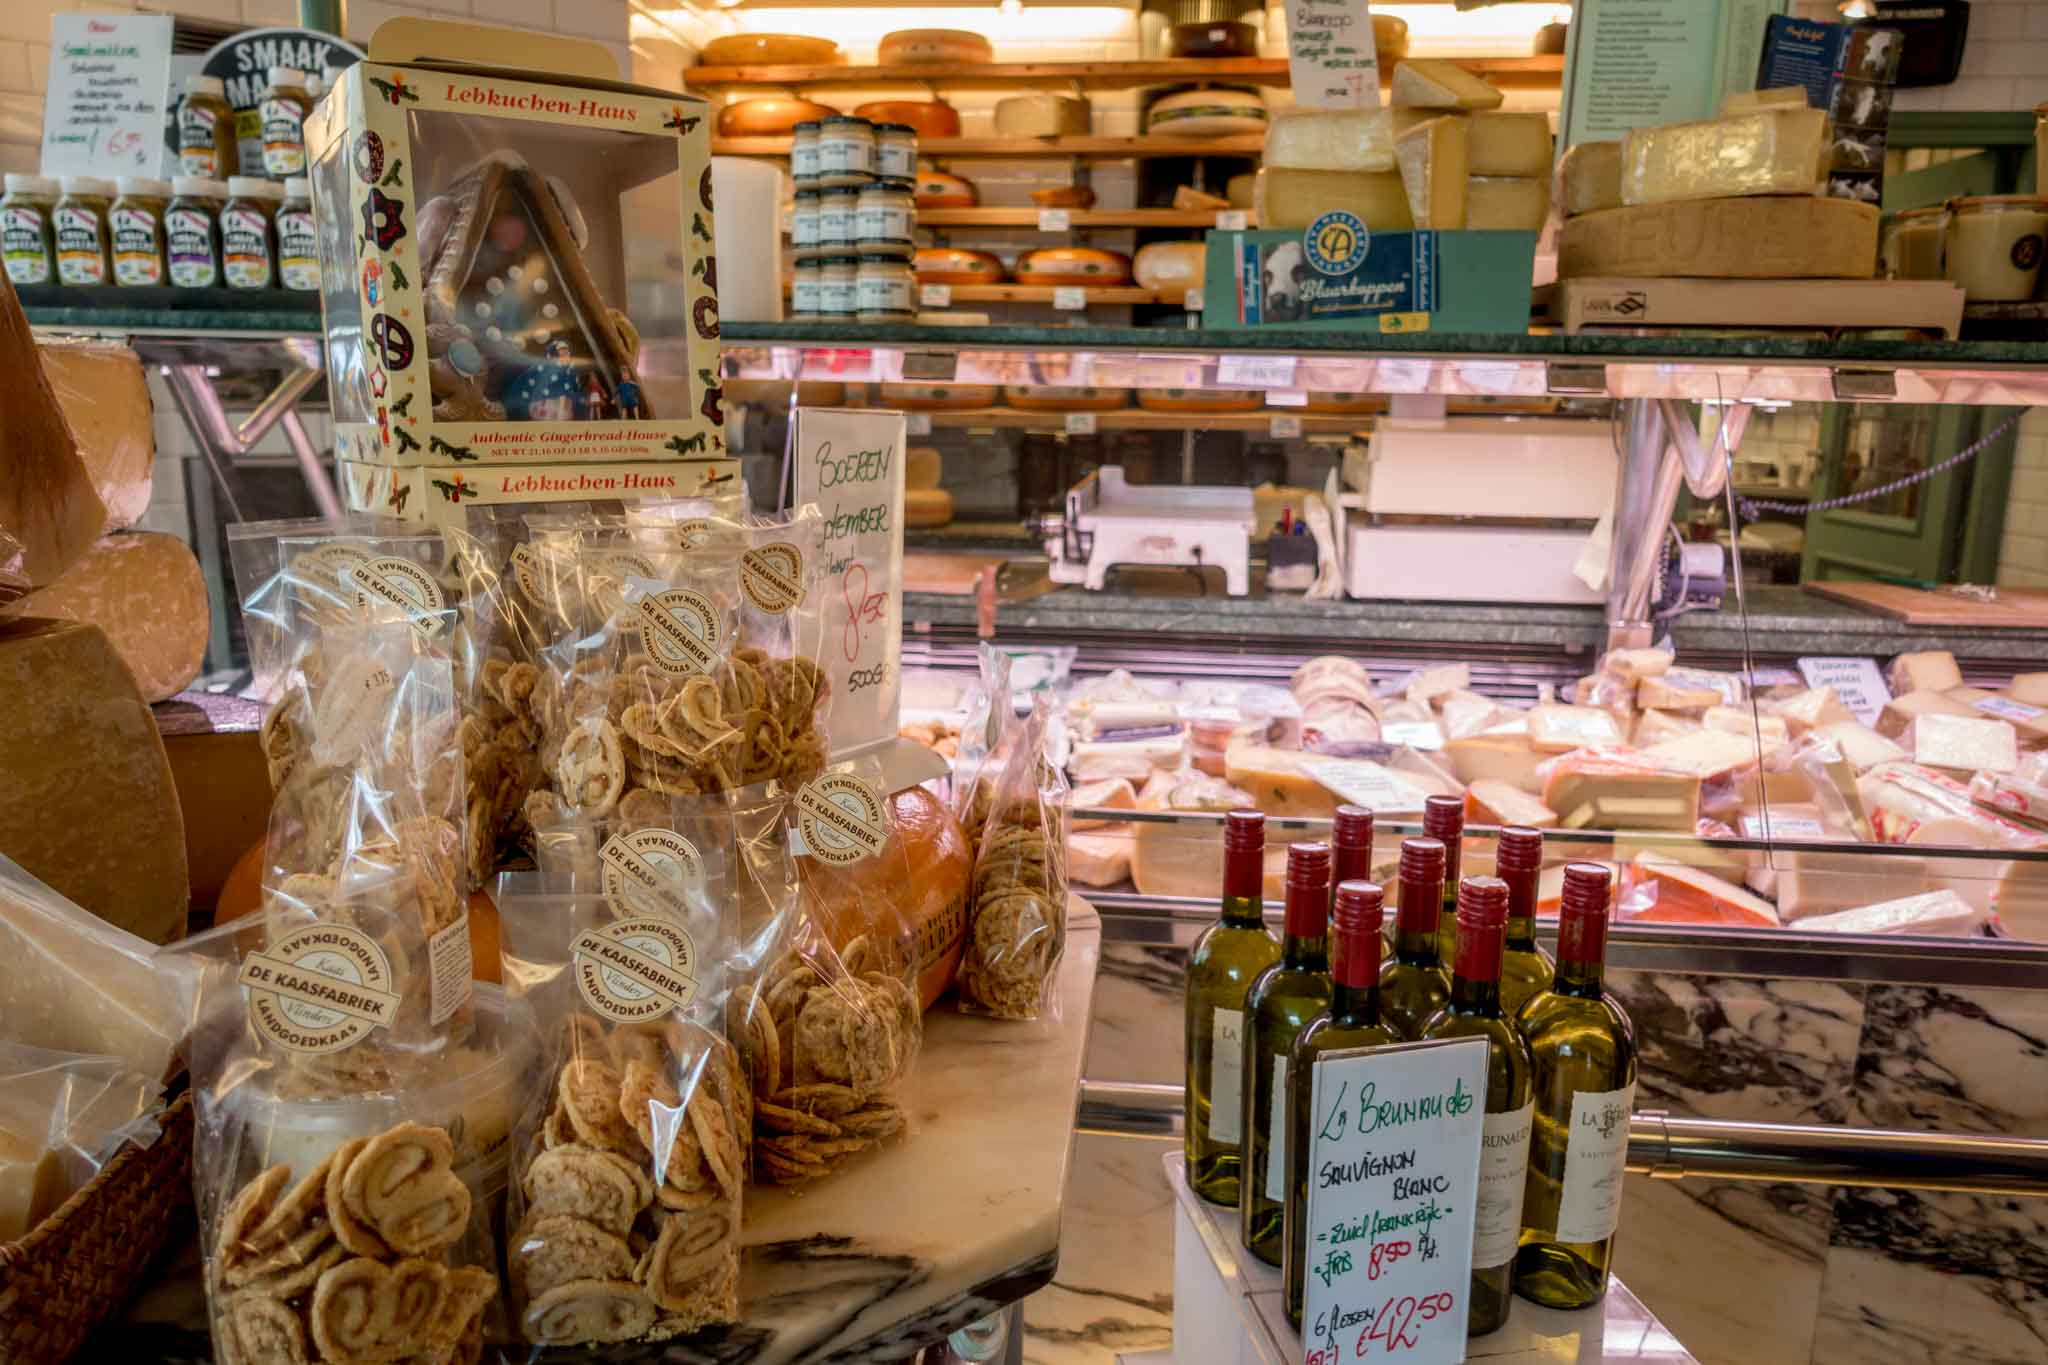 Store full of traditional Dutch food like cheese and pastries